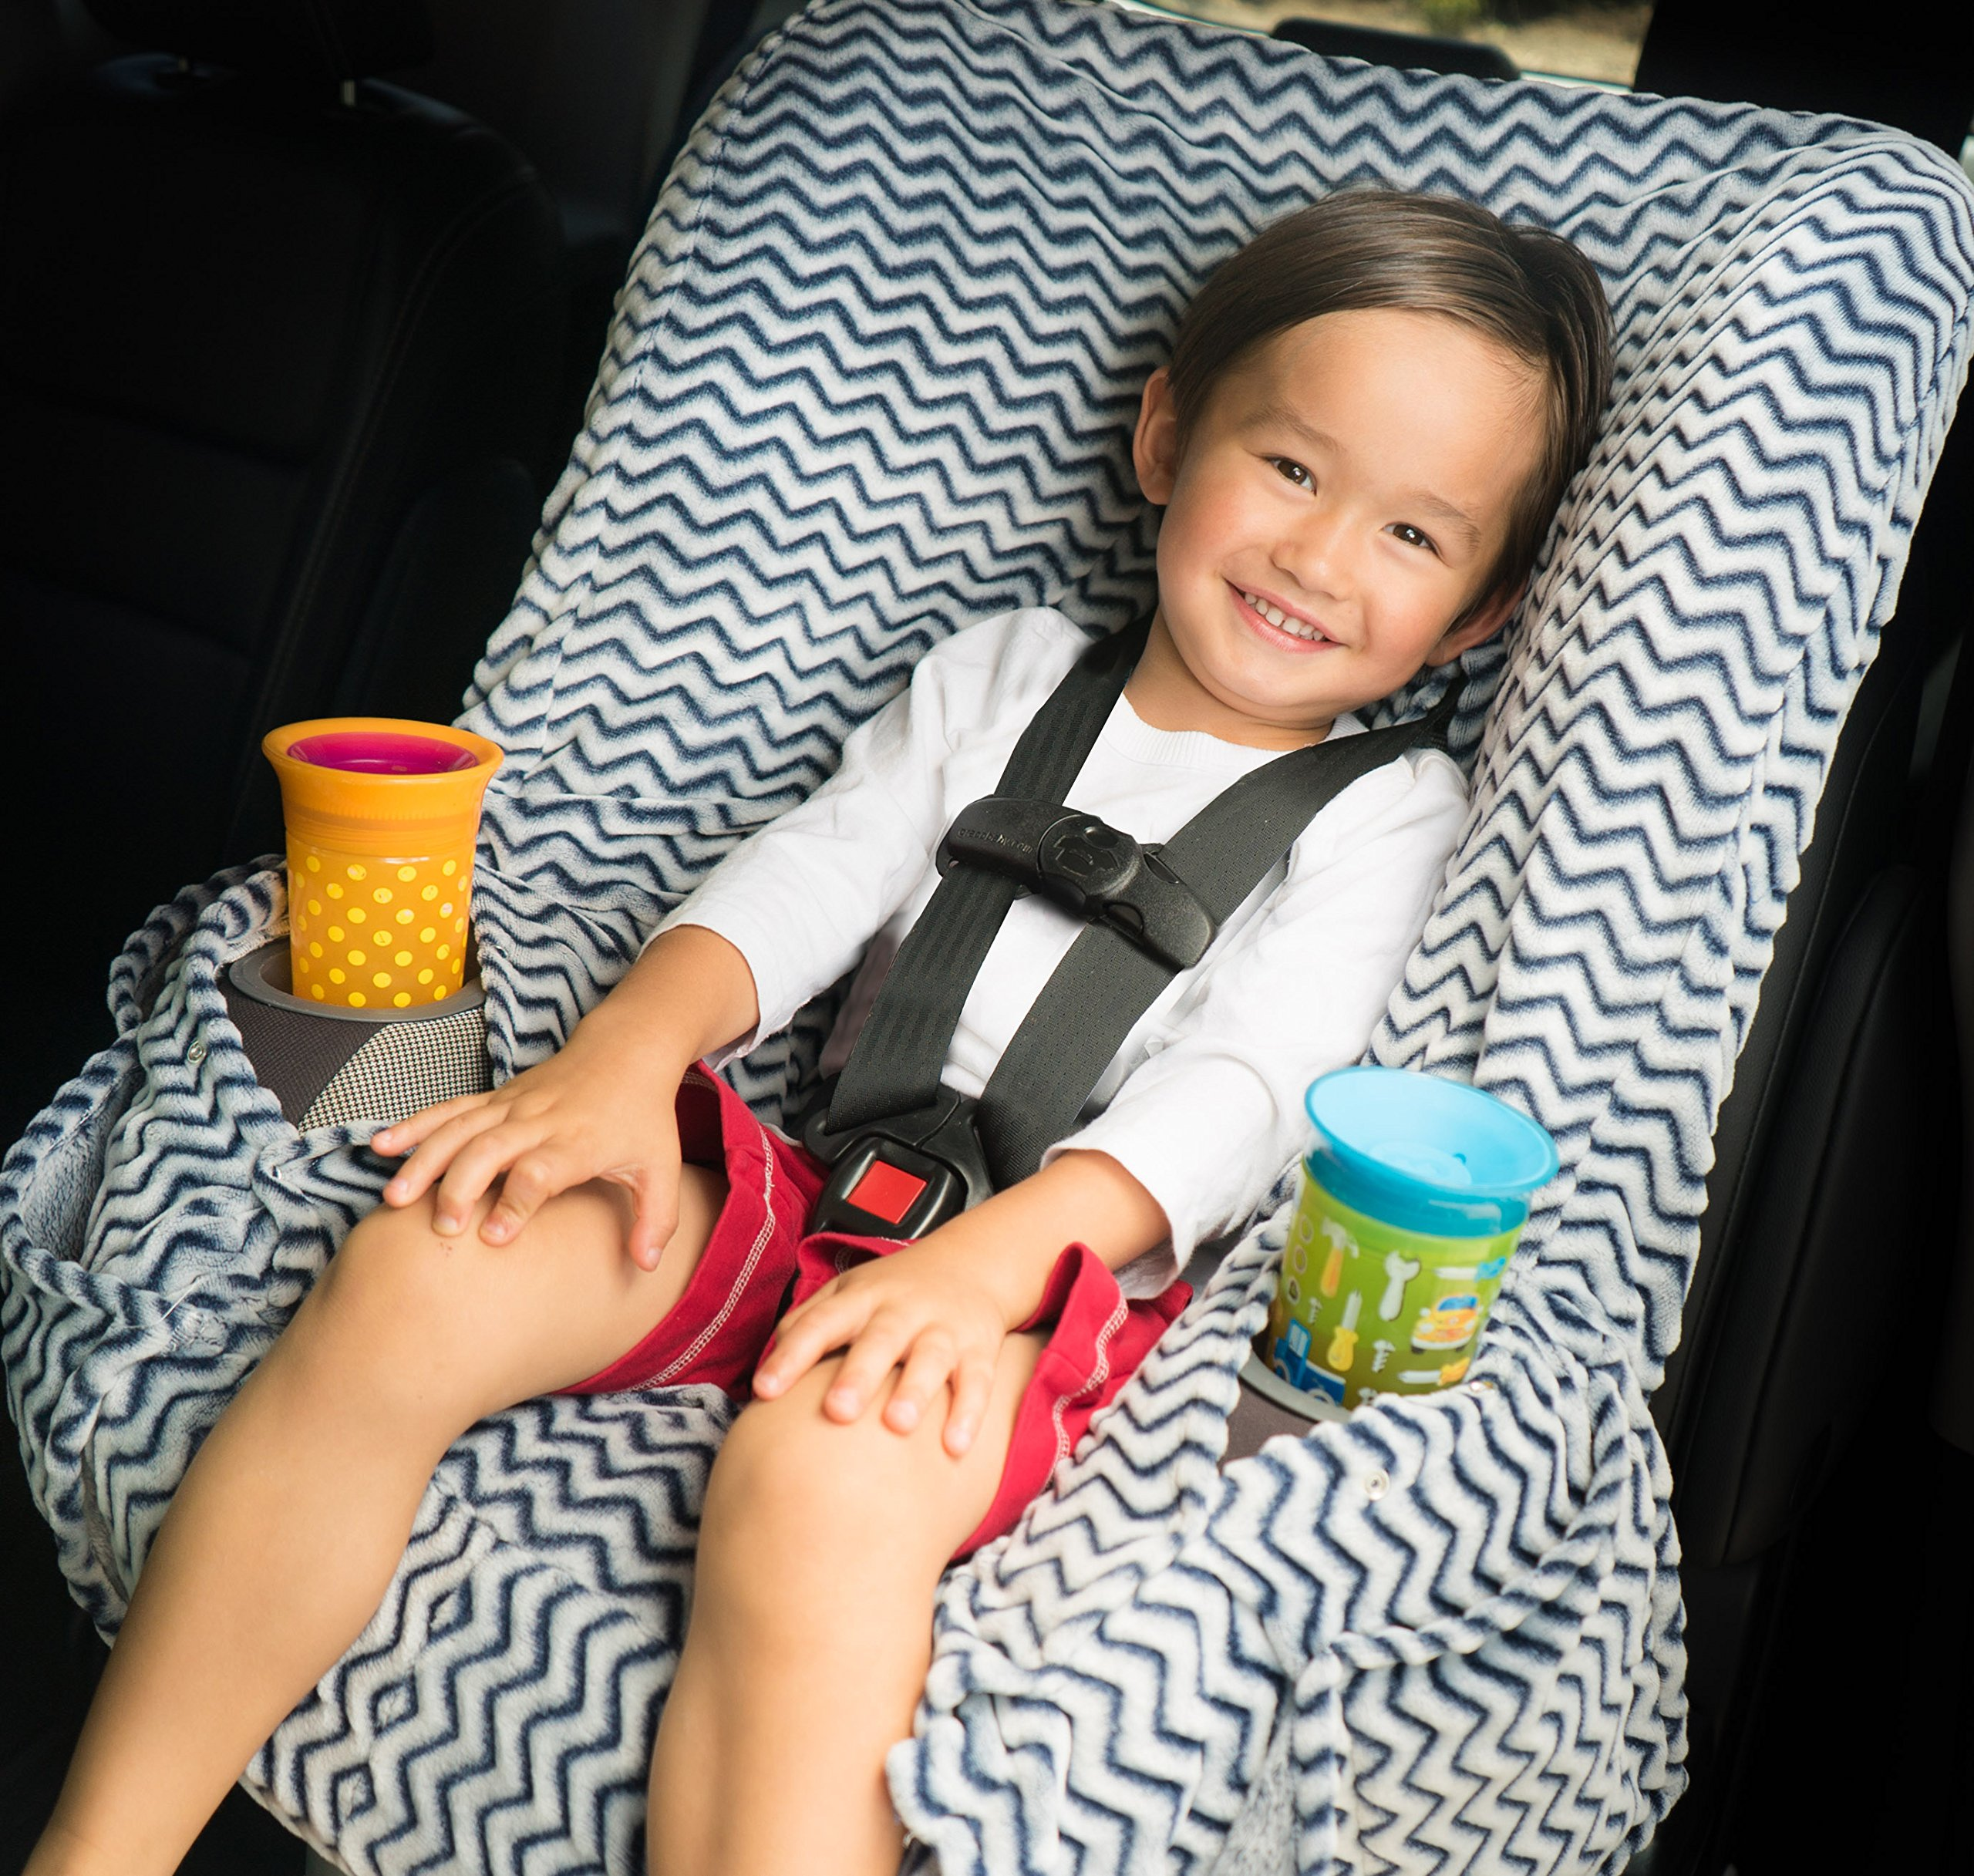 Niko Easy Wash Children's Car Seat Cover & Liner